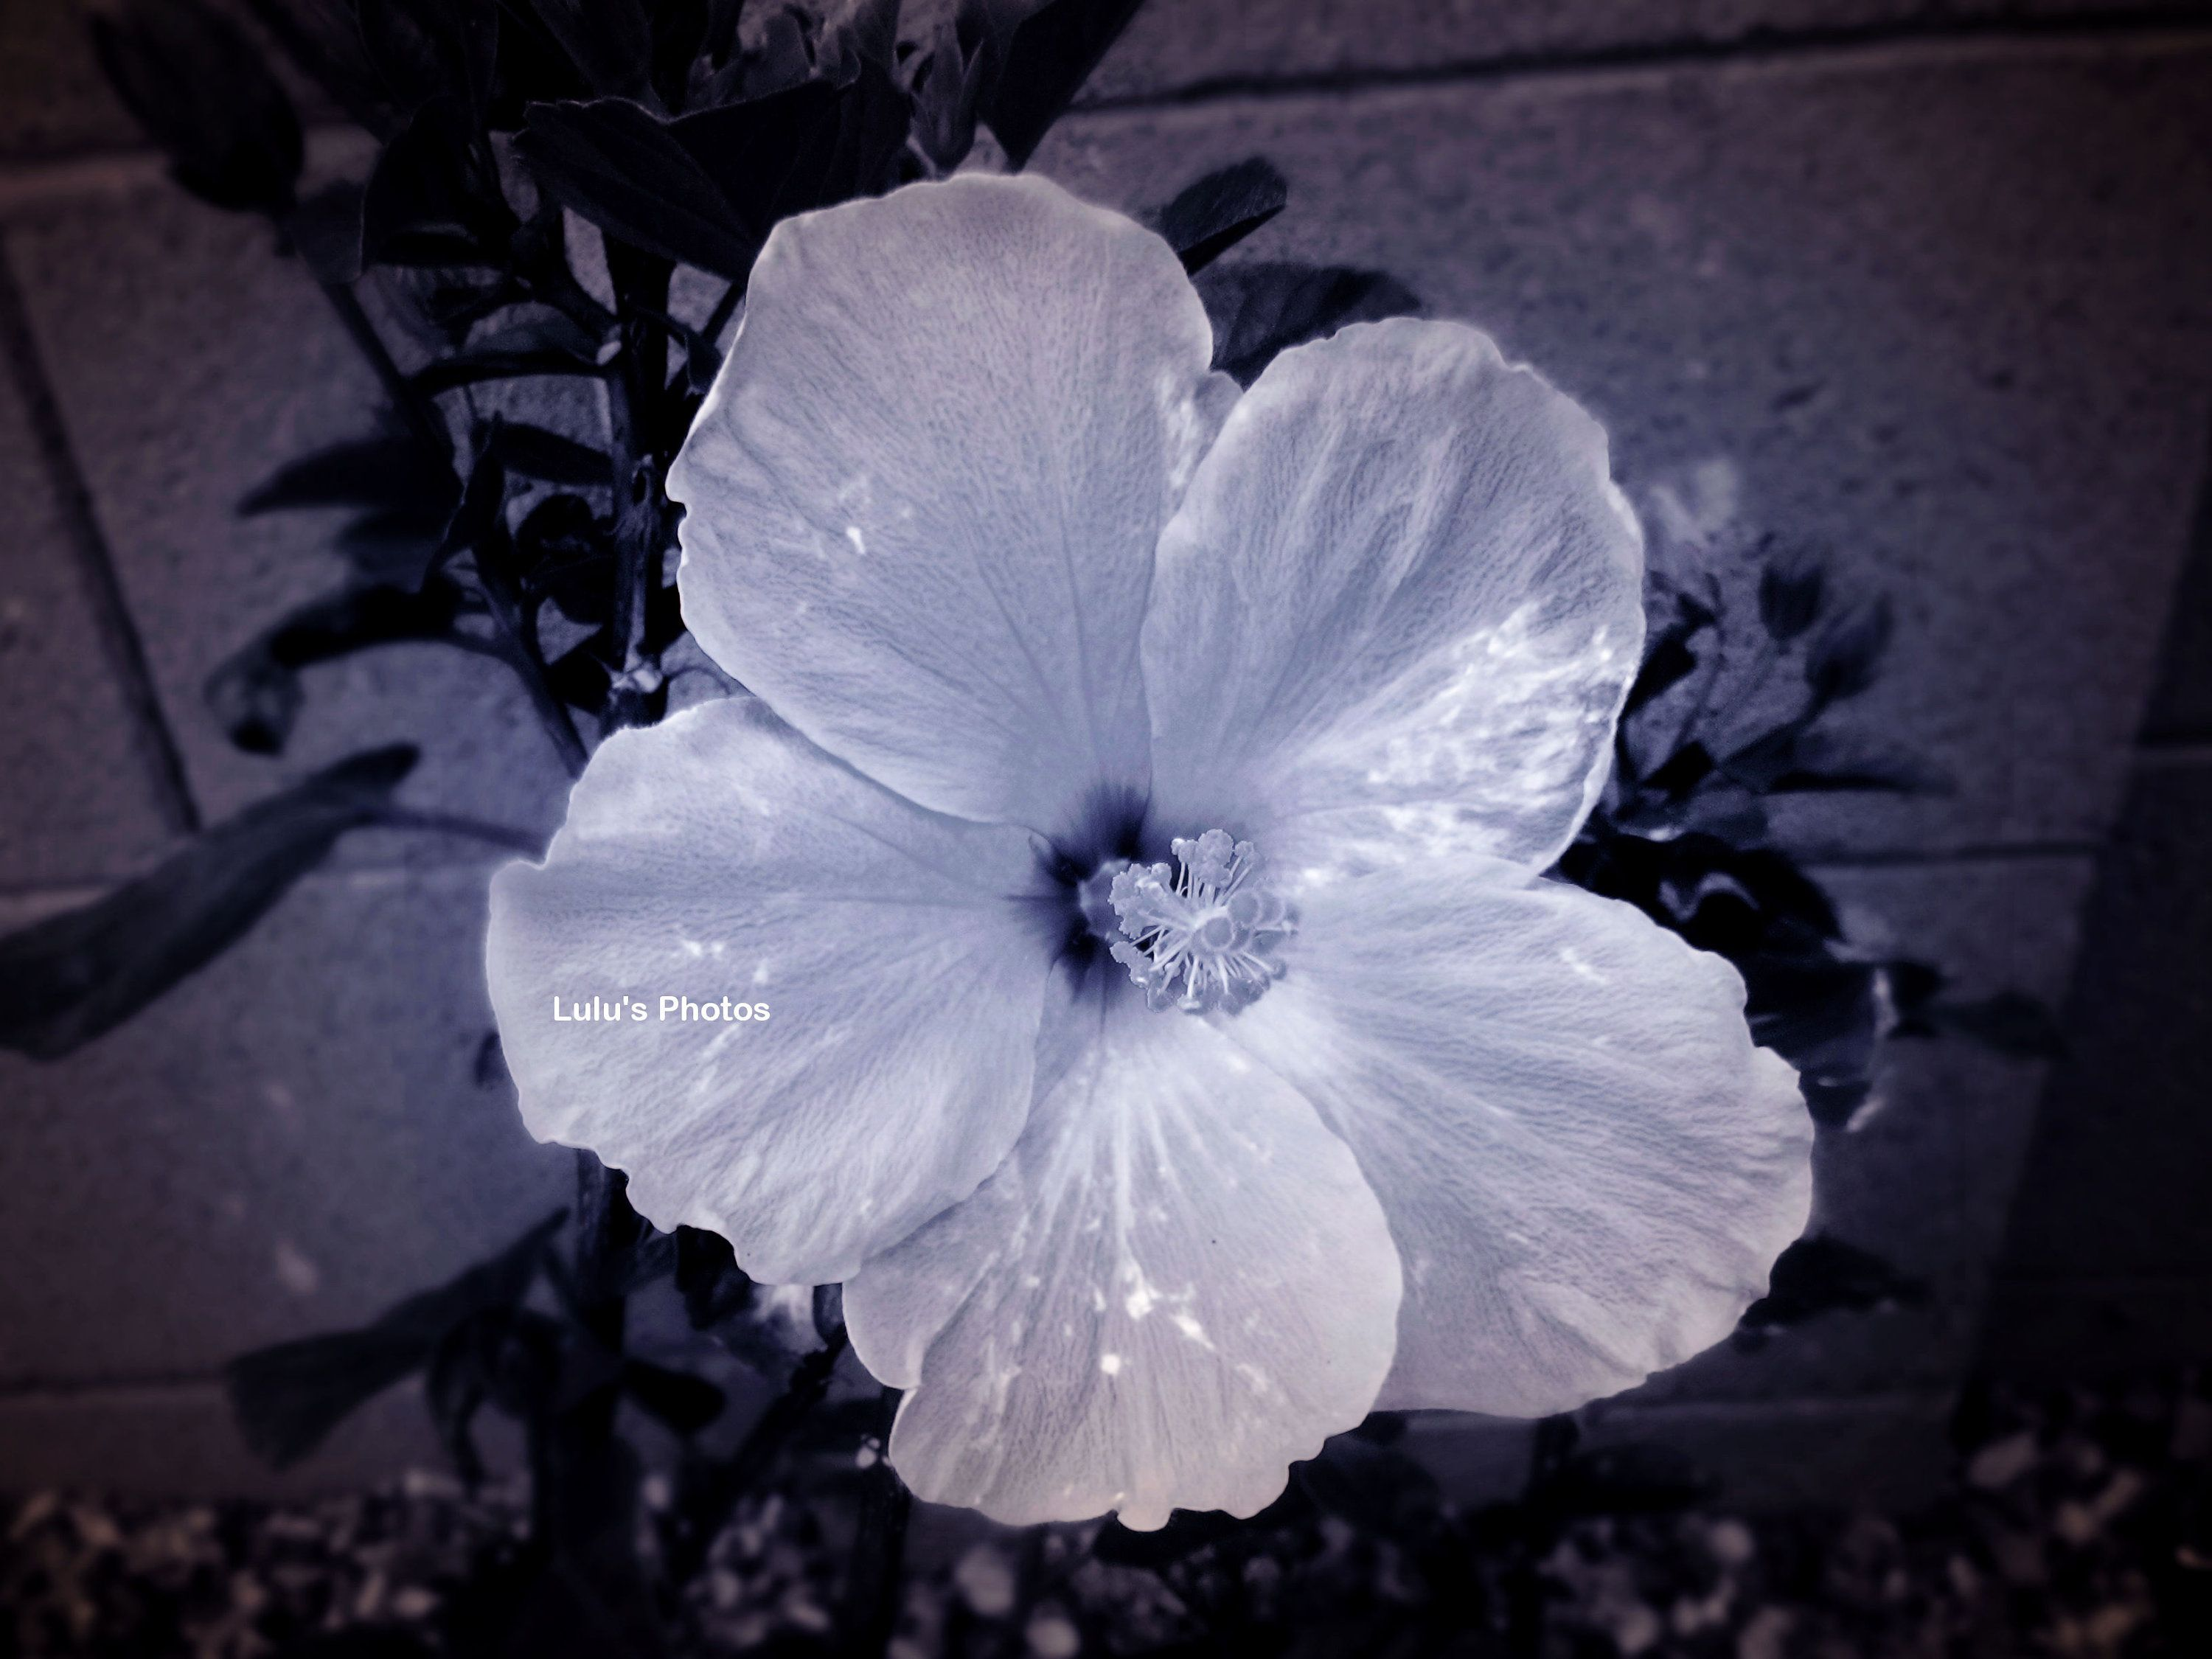 Black And White Hibiscus Flower Photography Prints And Etsy In 2020 Flowers Photography White Hibiscus Hibiscus